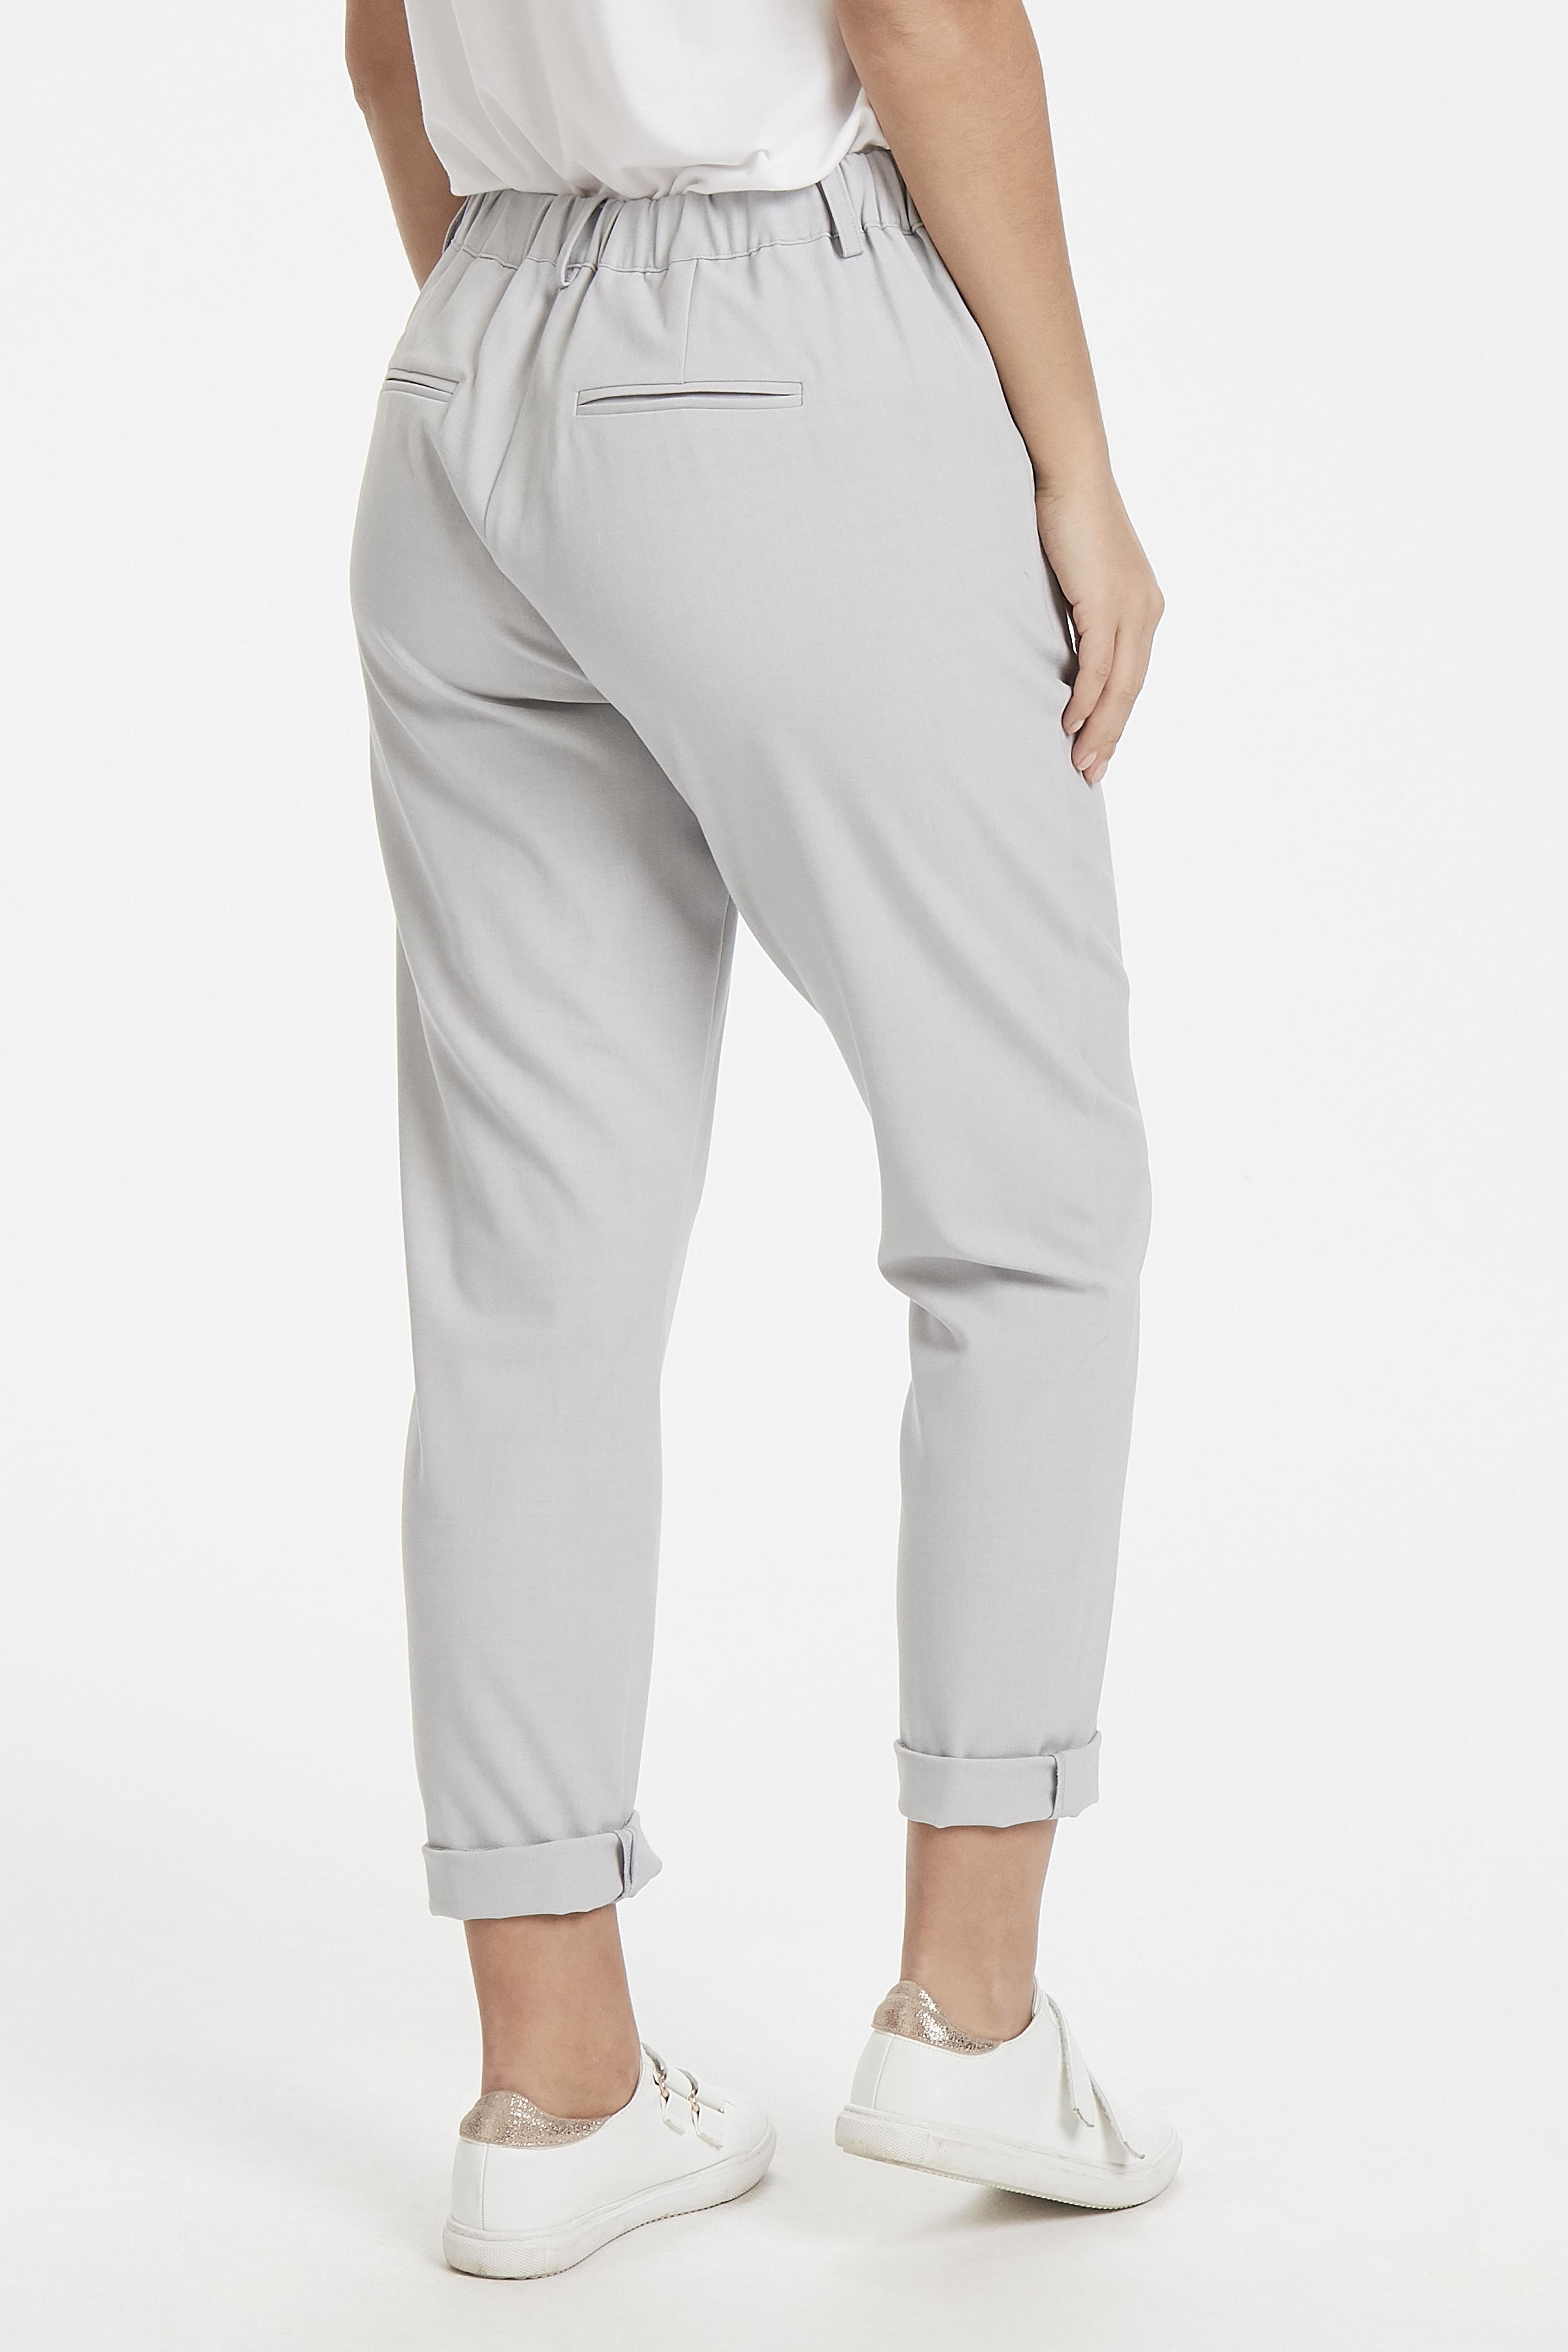 Light Grey Mel. Pants Suiting von b.young – Kaufen Sie Light Grey Mel. Pants Suiting aus Größe 34-46 hier